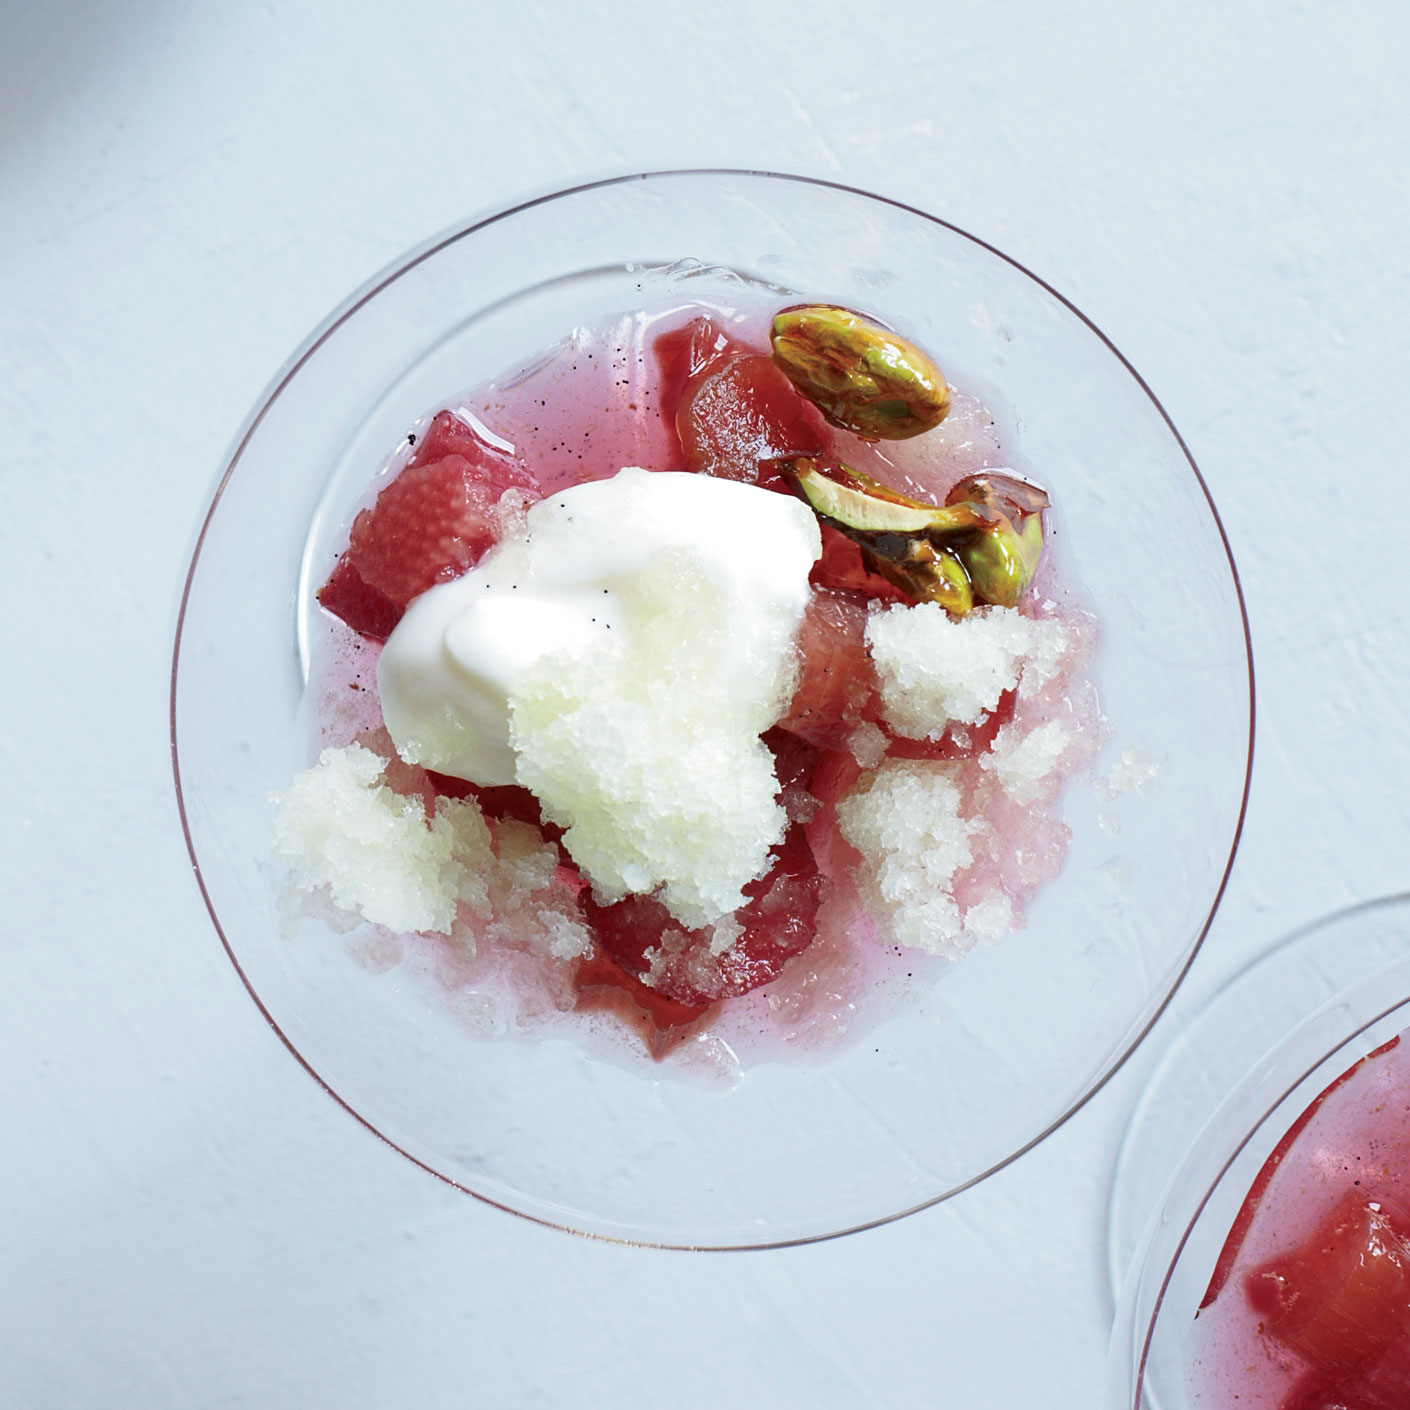 original-2013-r-poached-rhubarb-with-melon-granita.jpg